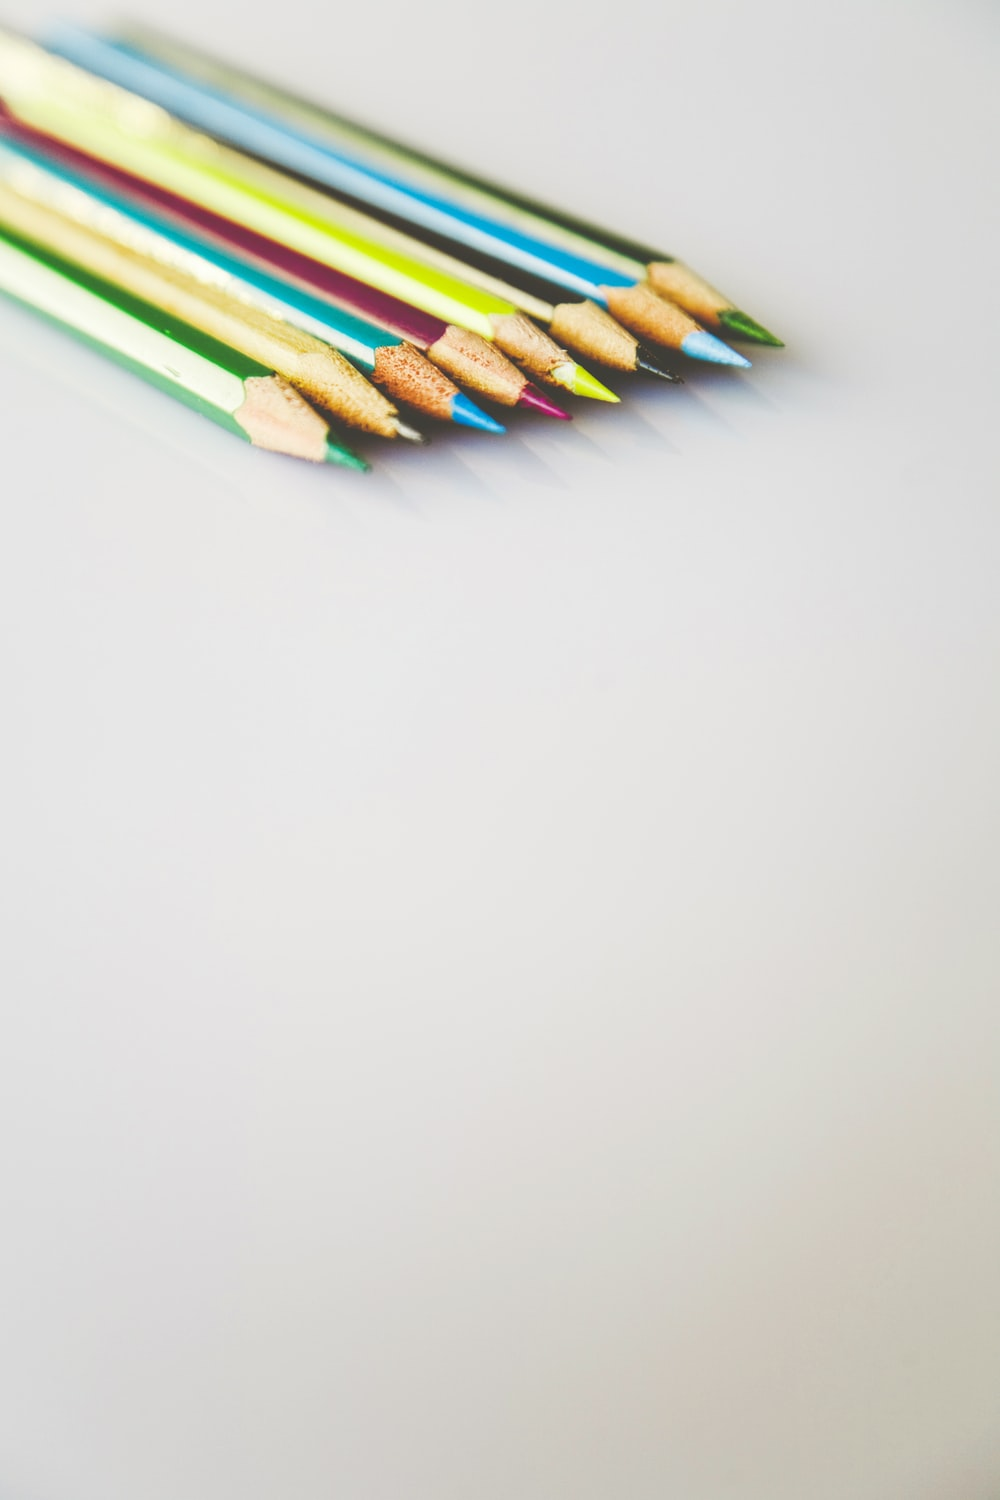 selective focus photography of assorted-color pencils on white surface